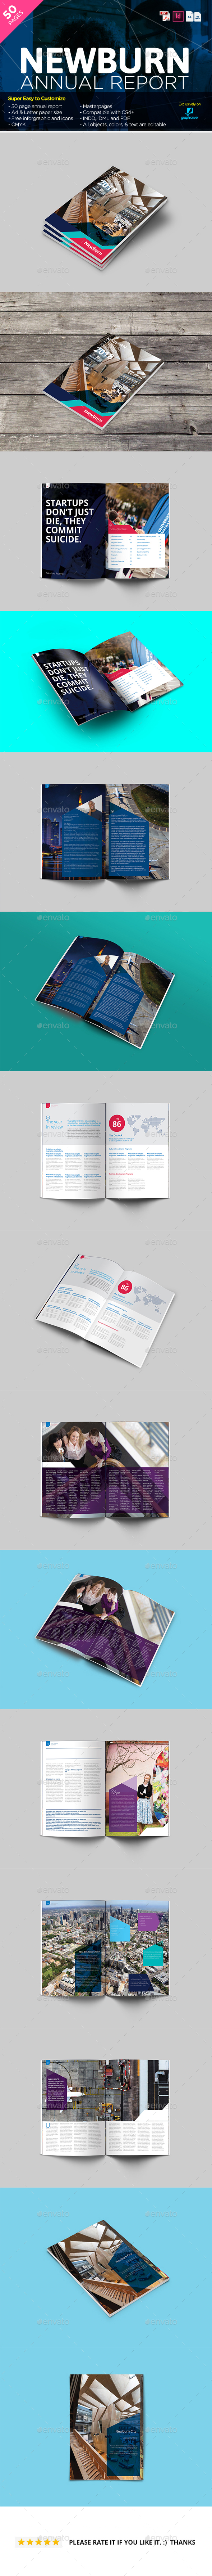 Newburn Modern Annual Report - Corporate Brochures